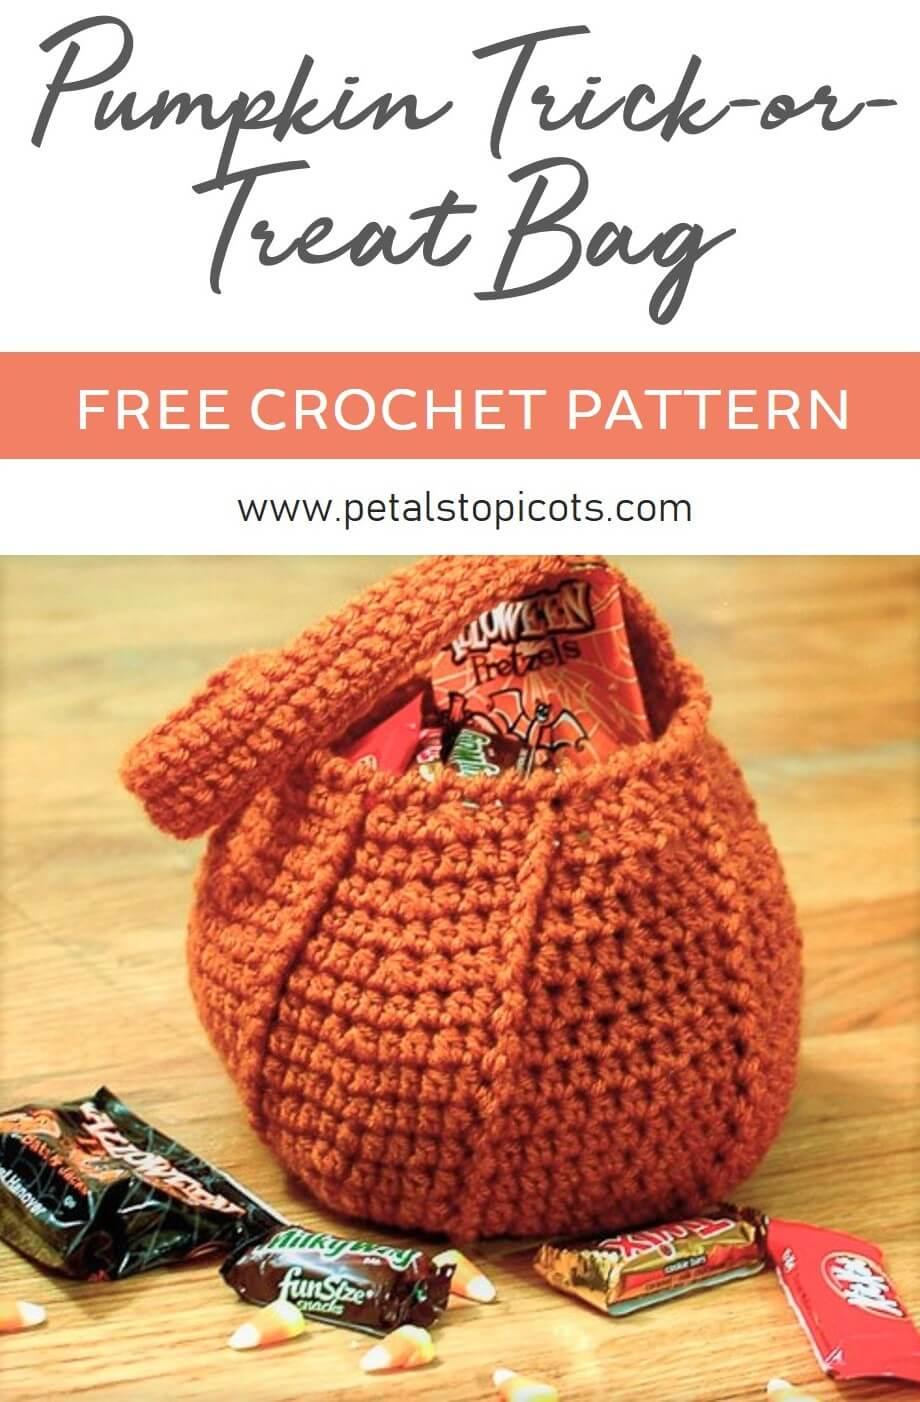 This cute trick or treat bag works up quickly and is perfect for holding all your little pumpkin to tote around the neighborhood! #petalstopicots